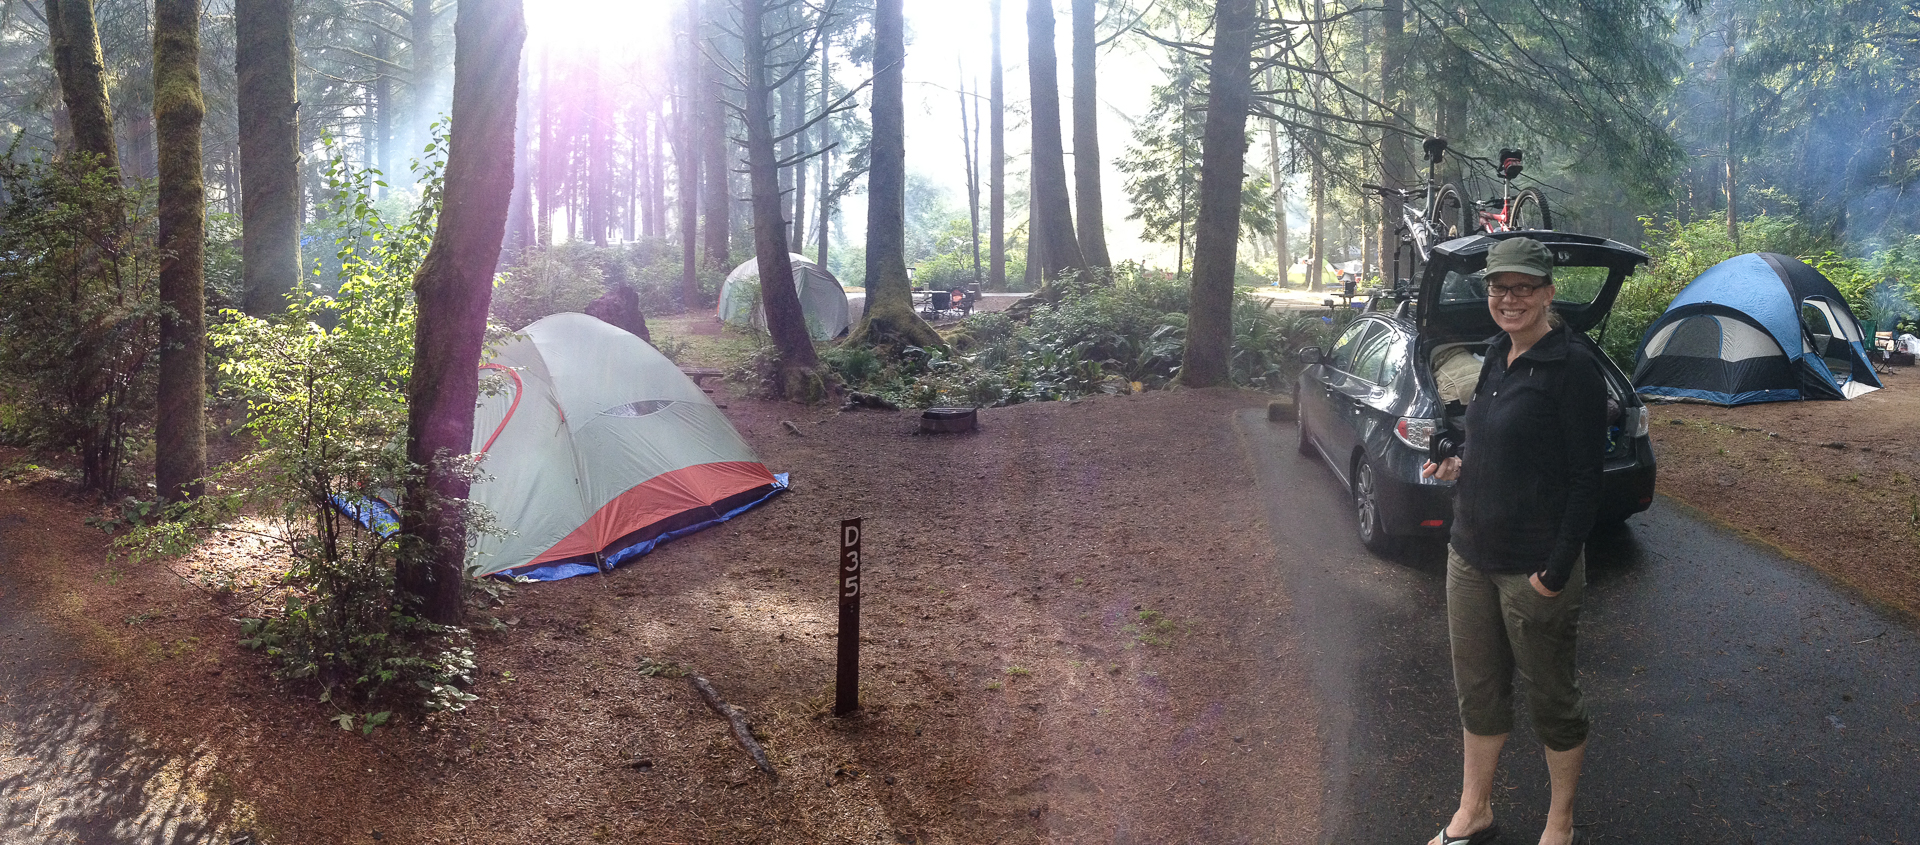 Our last campsite. As you can see, not a lot of privacy.